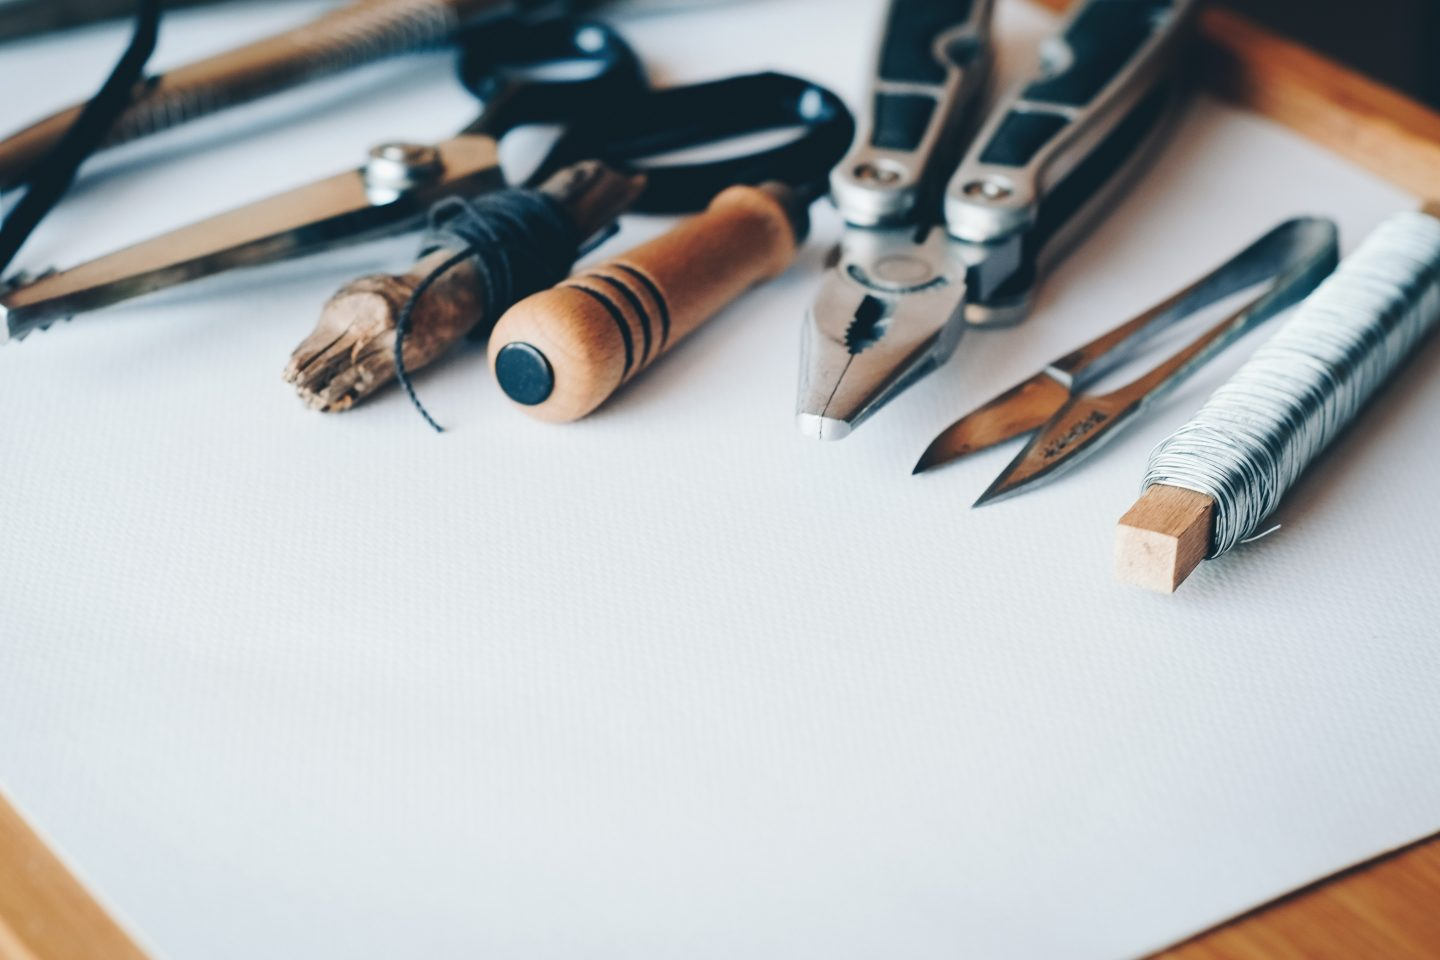 Guest Posts: Making Cash From Your Creative Crafts